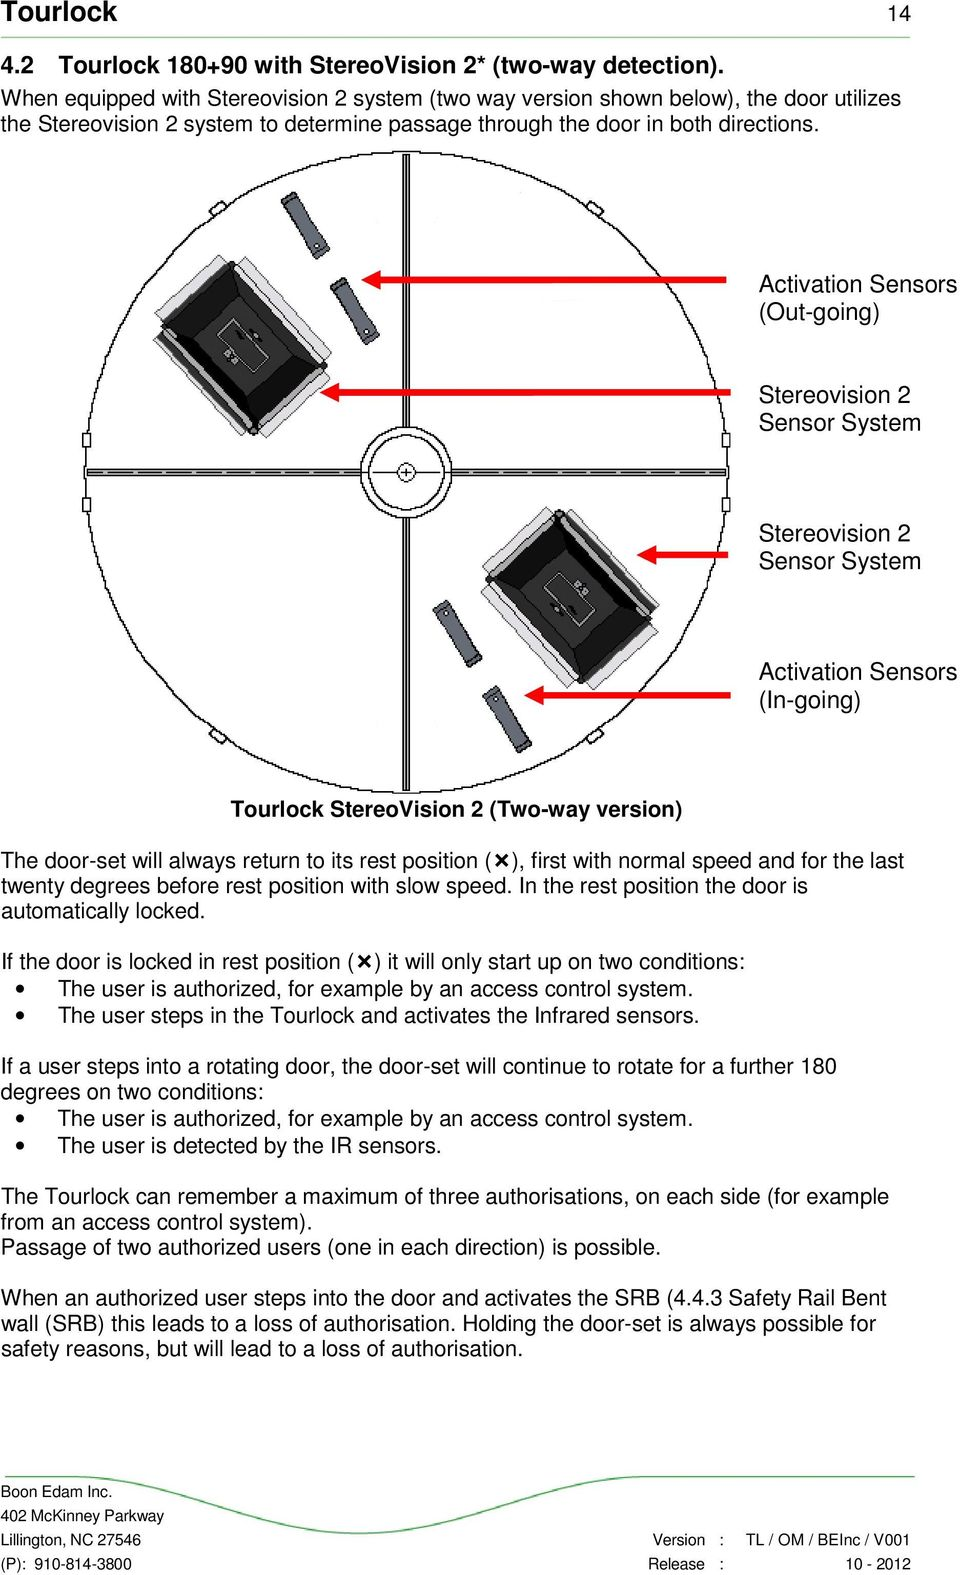 Tourlock Operation And Maintenance Manual Pdf I M506 Wiring Diagram Activation Sensors Out Going Stereovision 2 Sensor System 15 O M